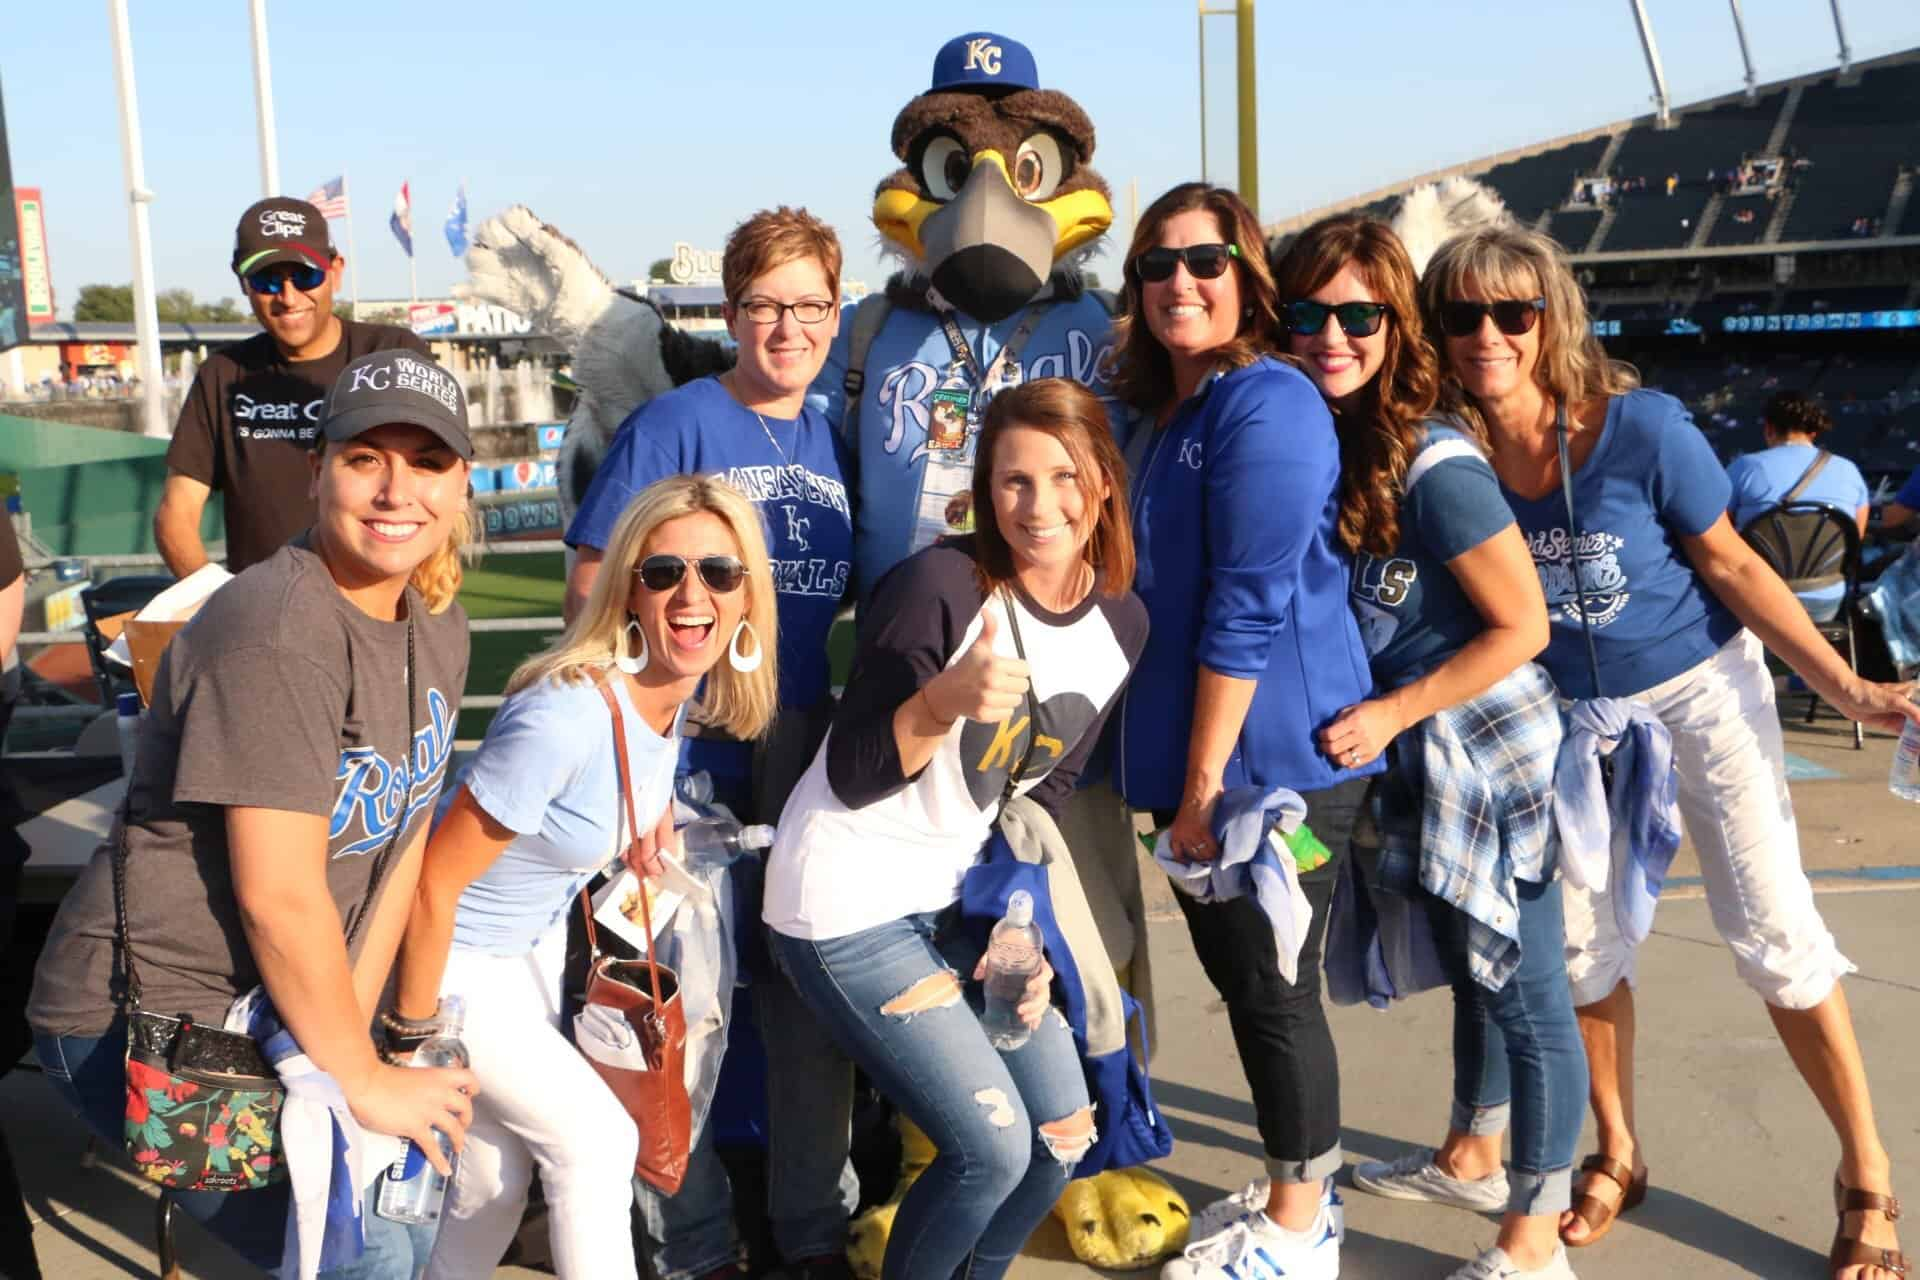 group-with-mascot-royals  - Braces and Invisalign in Kansas City, Overland Park, Olathe, and Paola, Kansas - Oltjen Orthodontics